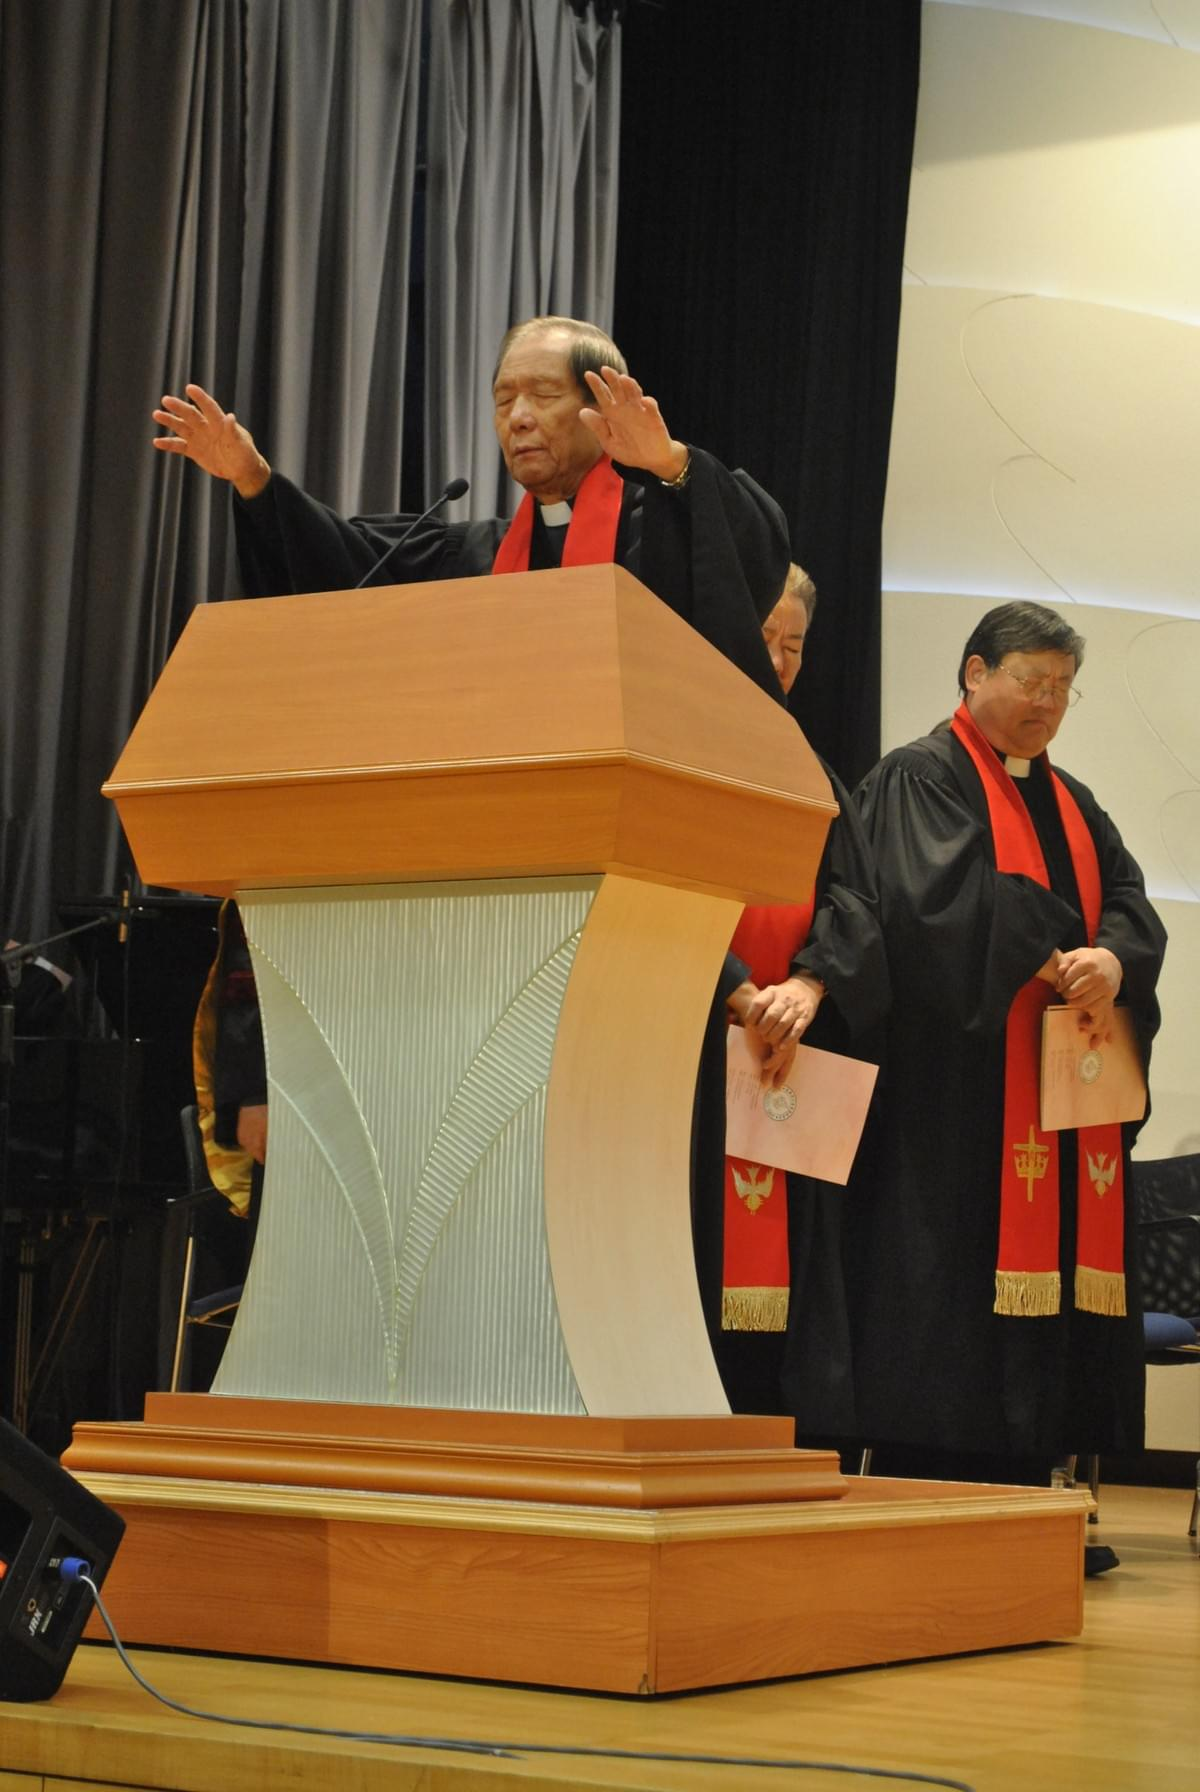 Rev. Paul CHAN Blessing the Audience